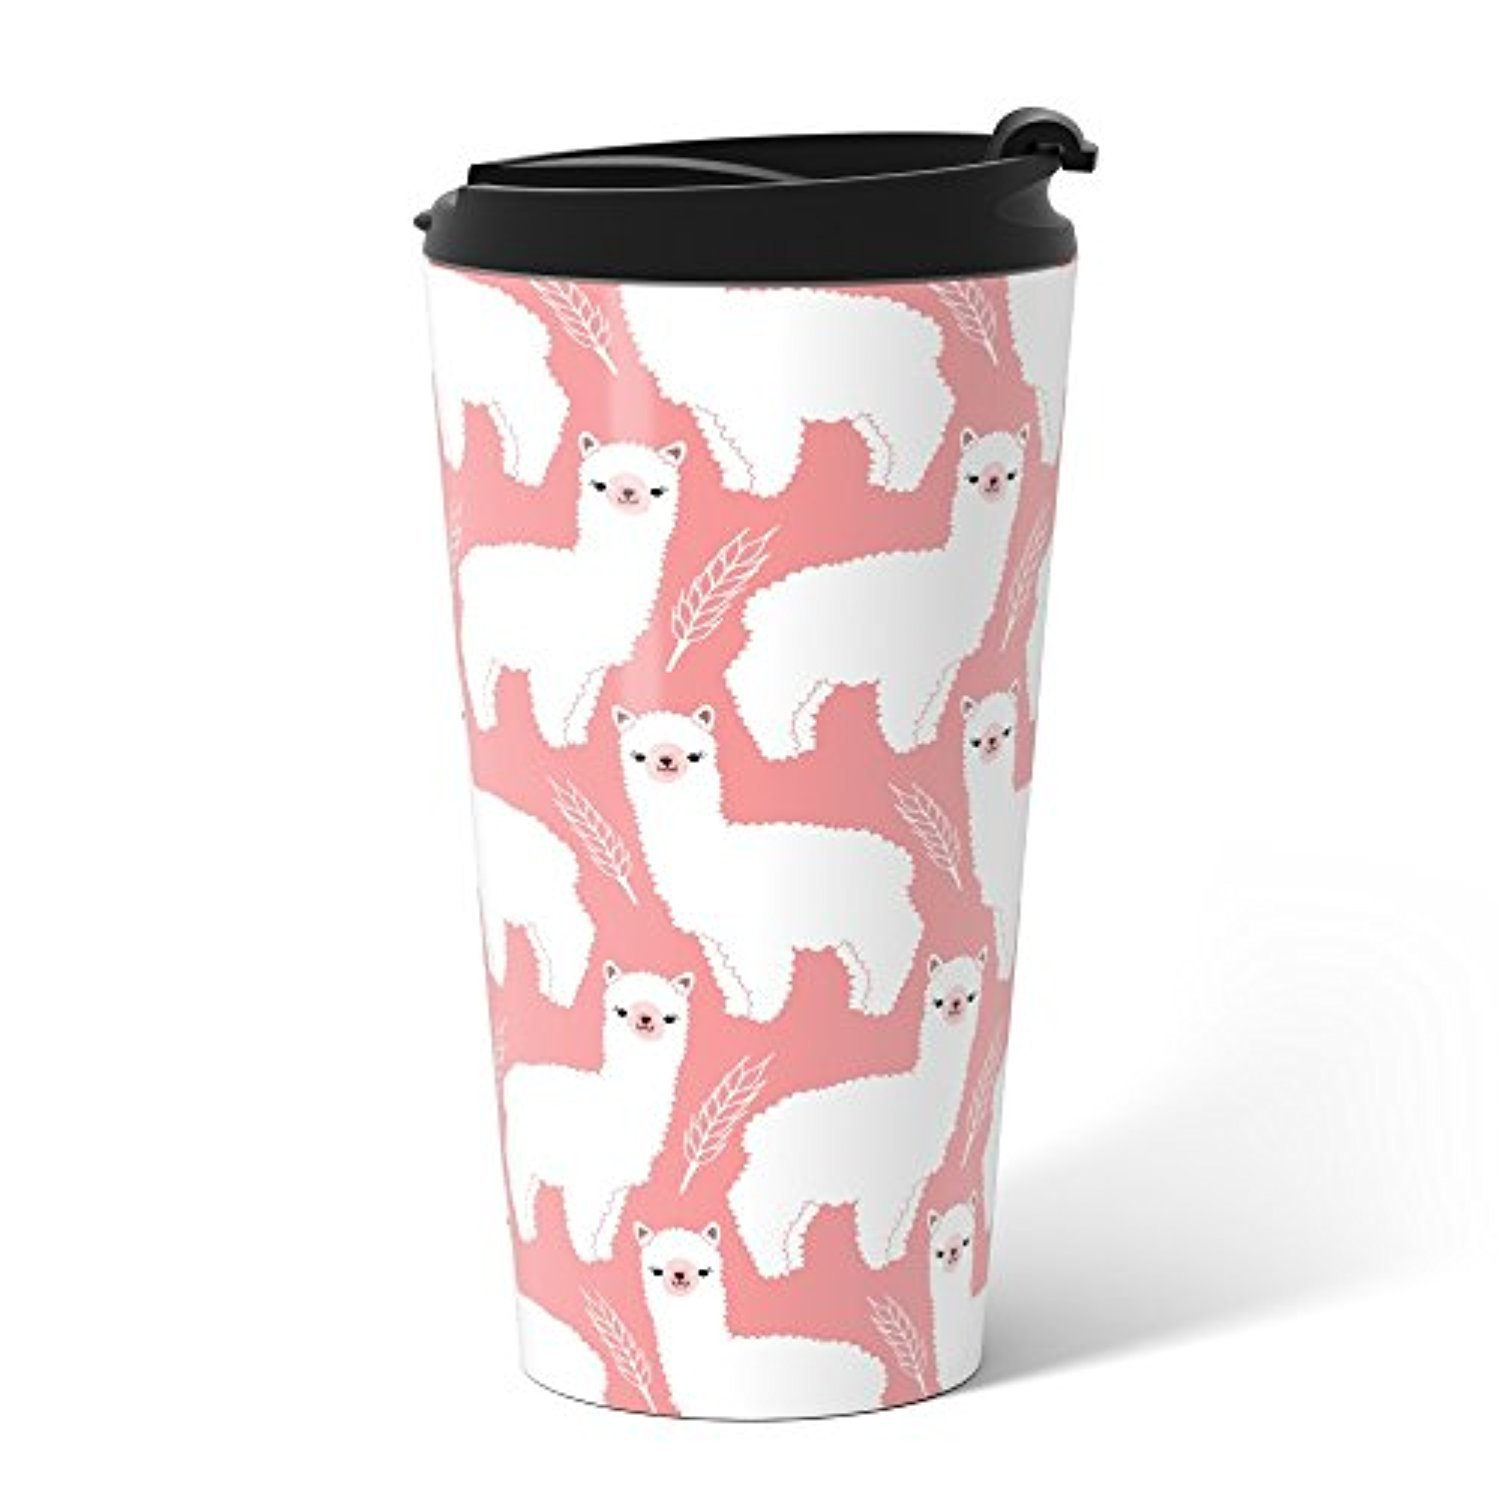 ◎送料込み◎ Society6 The Alpacas II Metal Travel Mug 15 oz